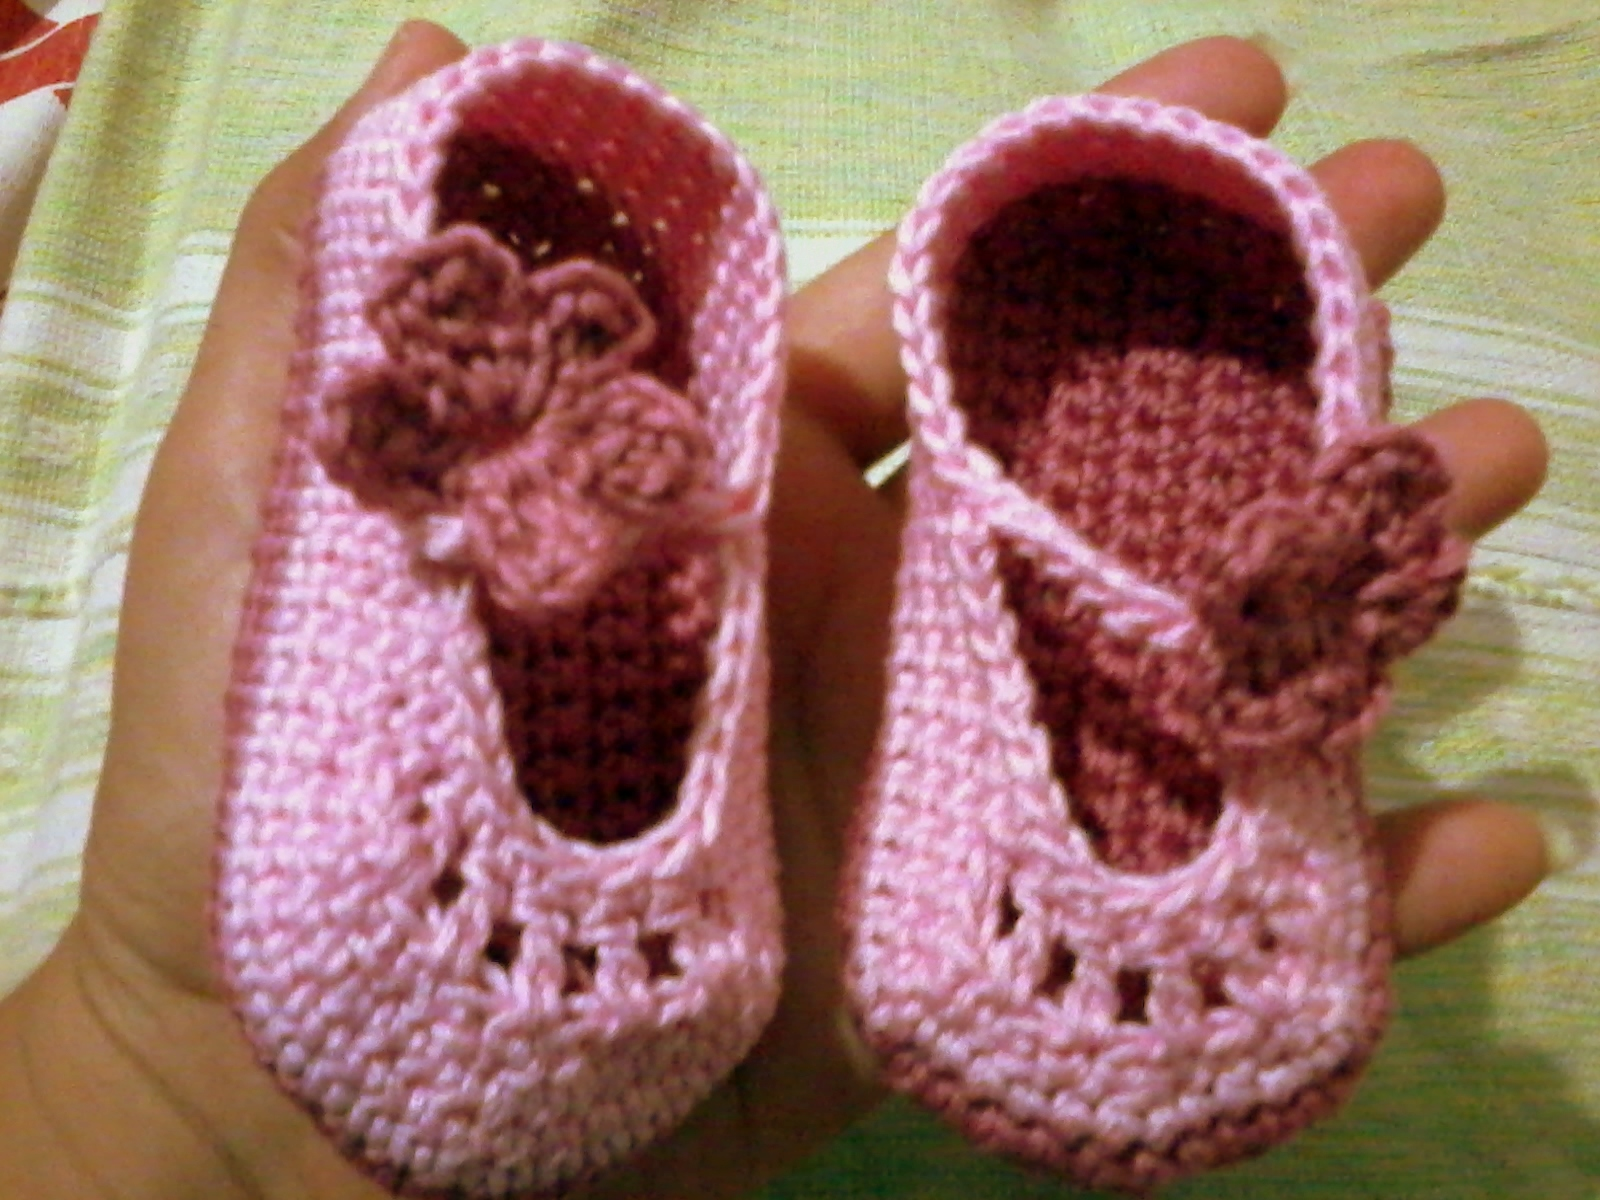 Crochet Tutorial Zapatitos : Zapatitos de crochet: Tutorial . . . . . . . . . . . . El detalle ...